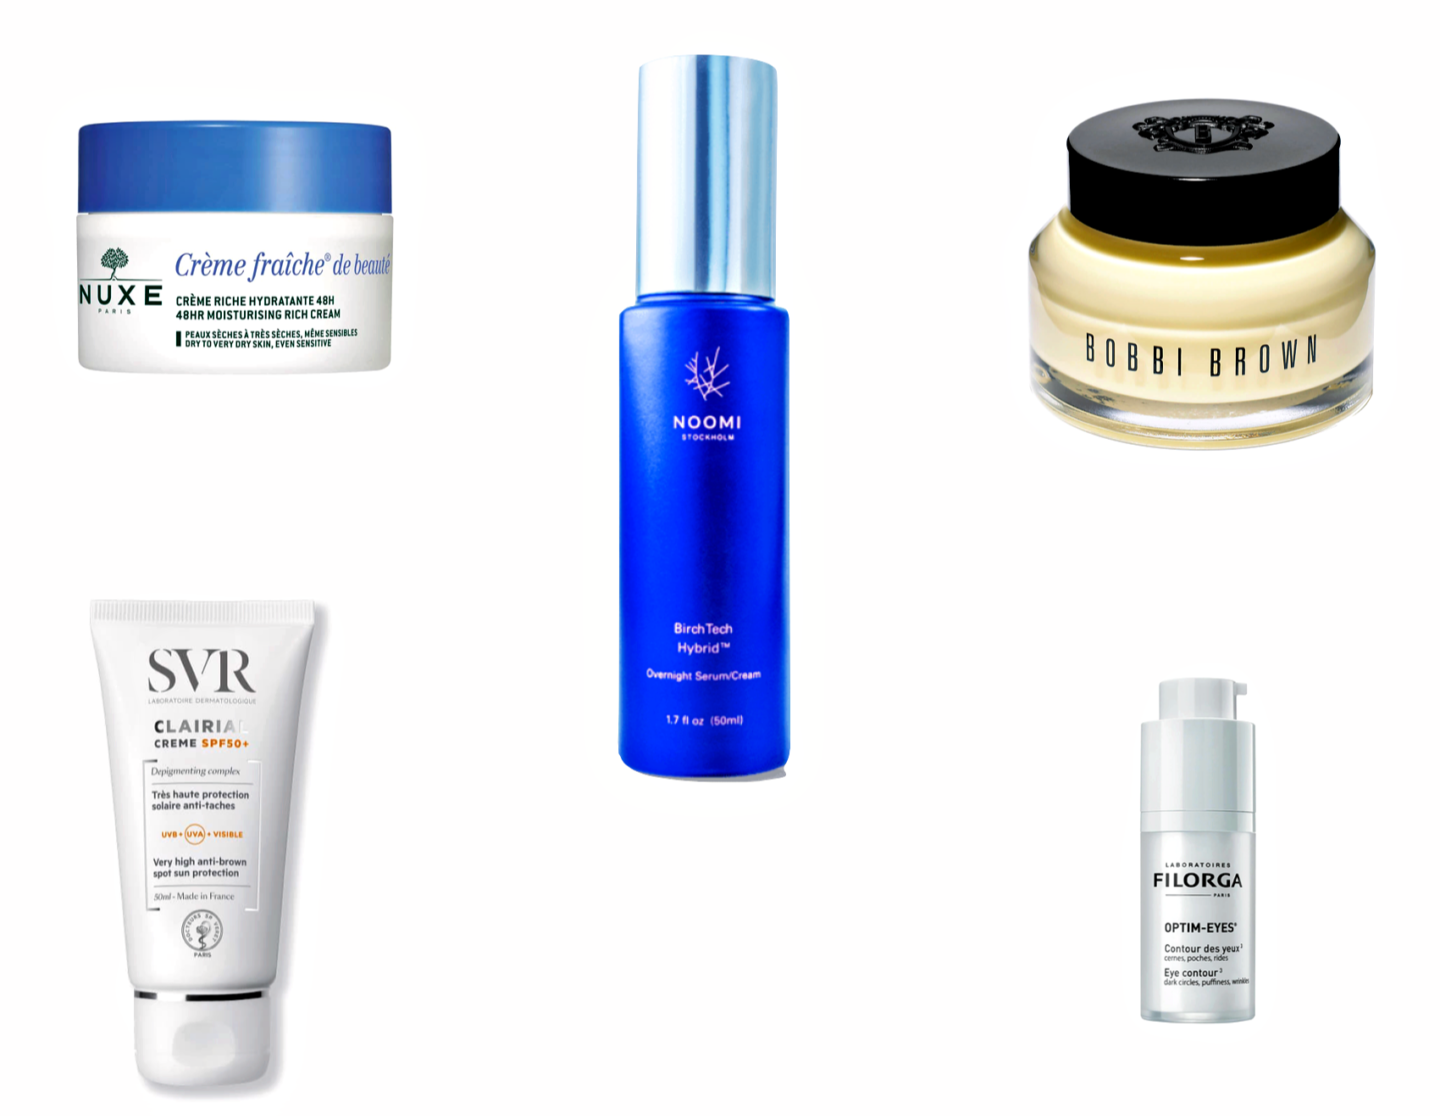 Continuing to take care of our skin